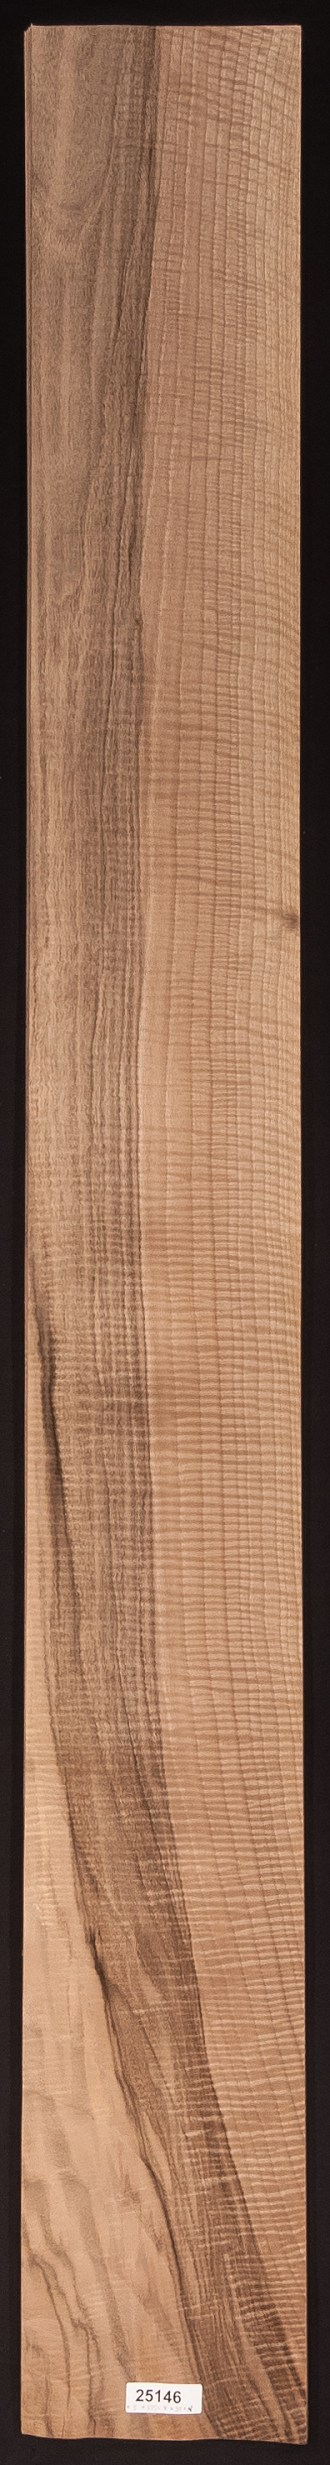 AAA Curly Walnut (European) Veneer Sheet